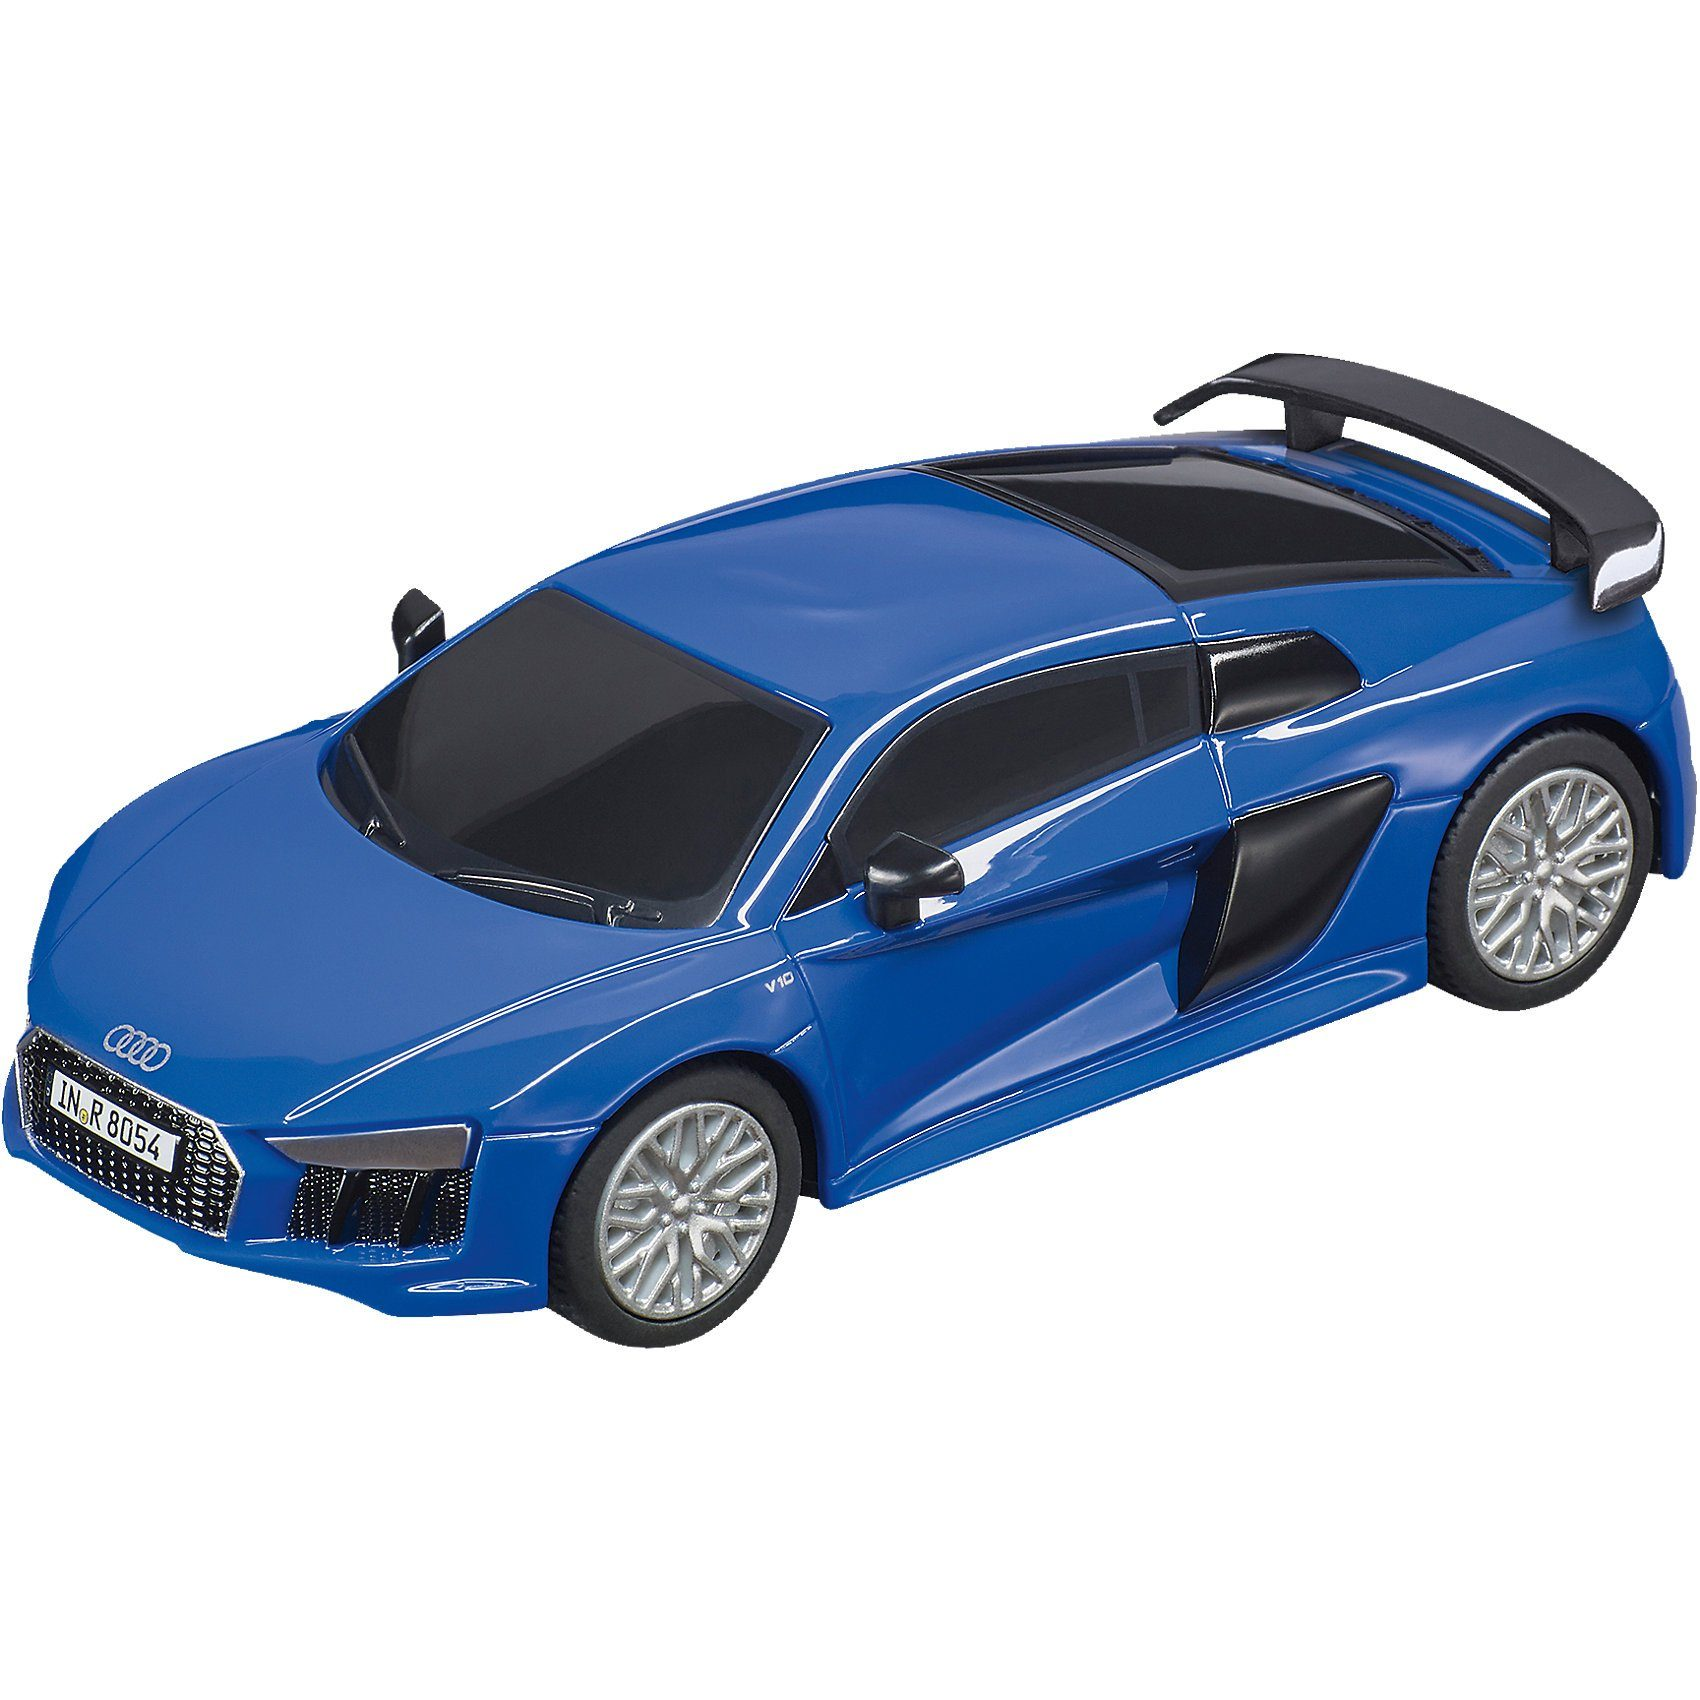 Carrera Digital 143 41395 Audi R8 V10 Plus